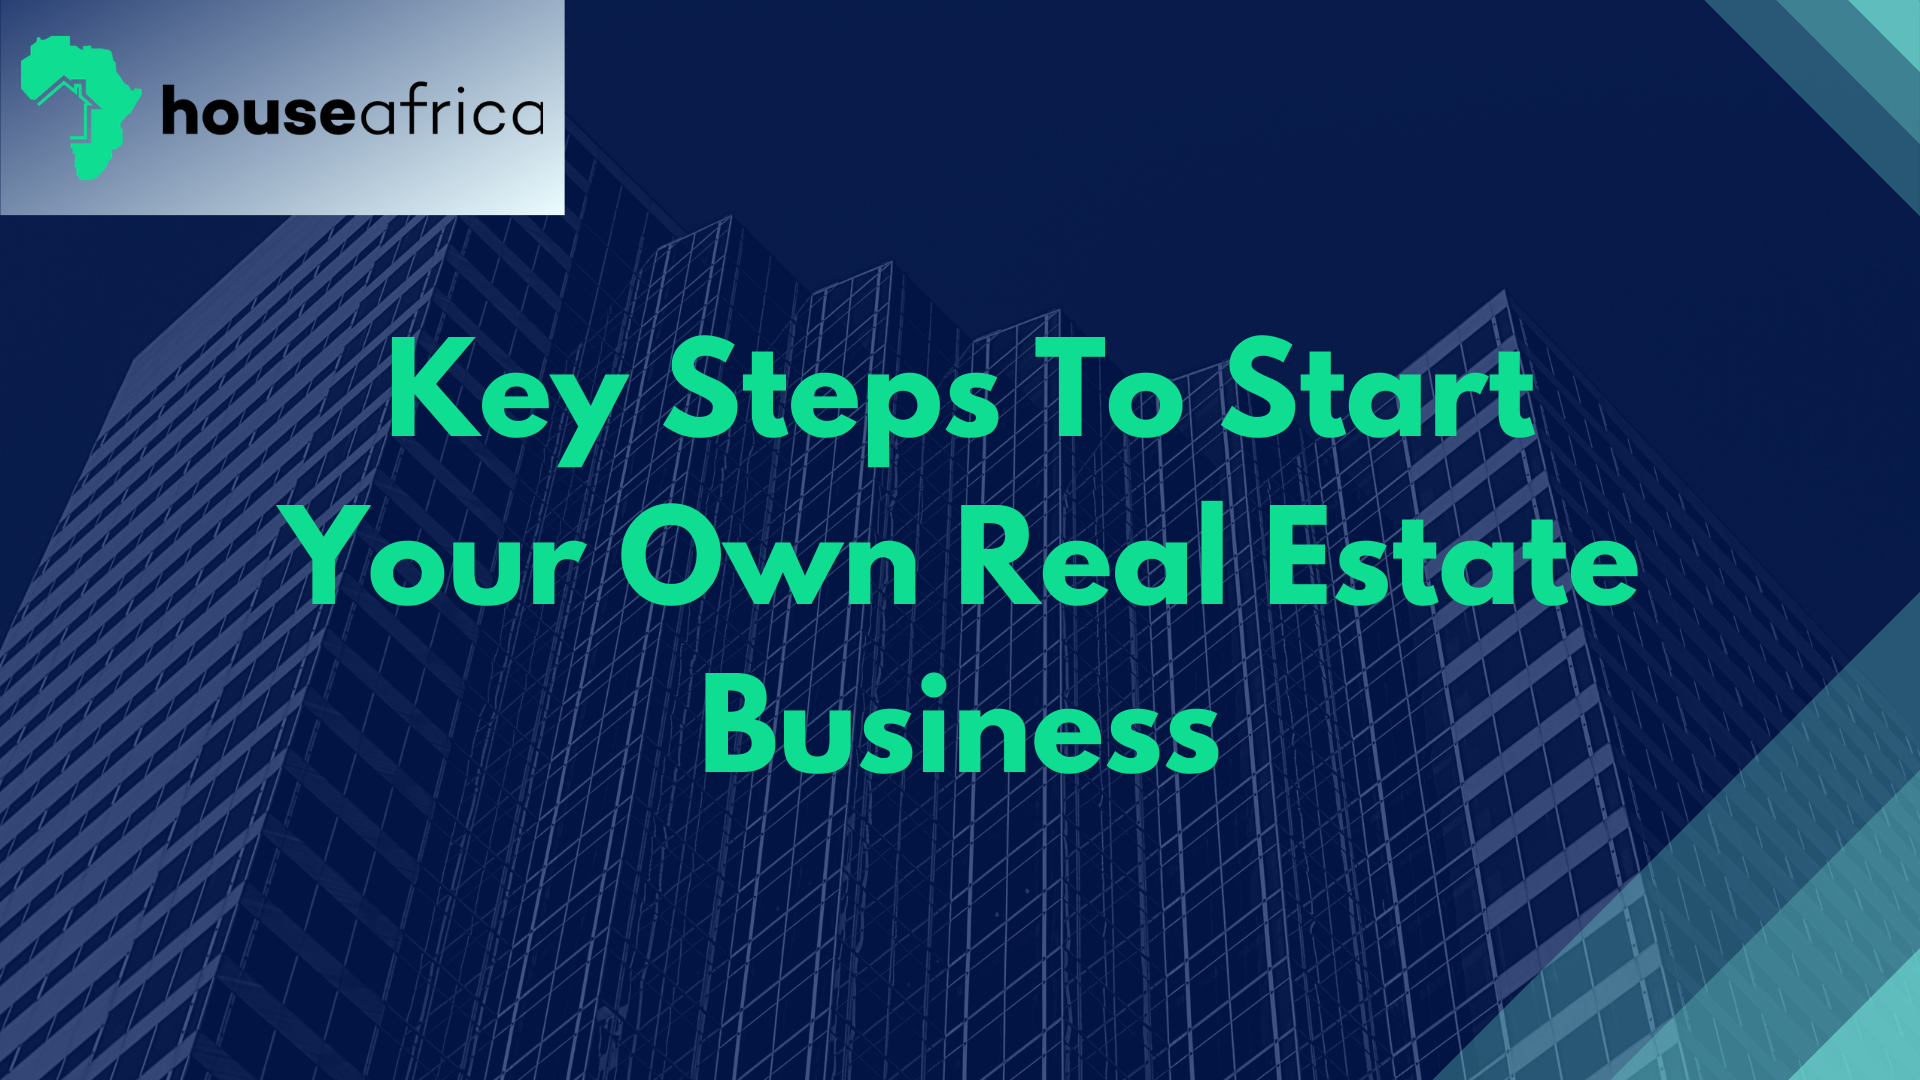 Key Steps To Start Your Own Real Estate Business